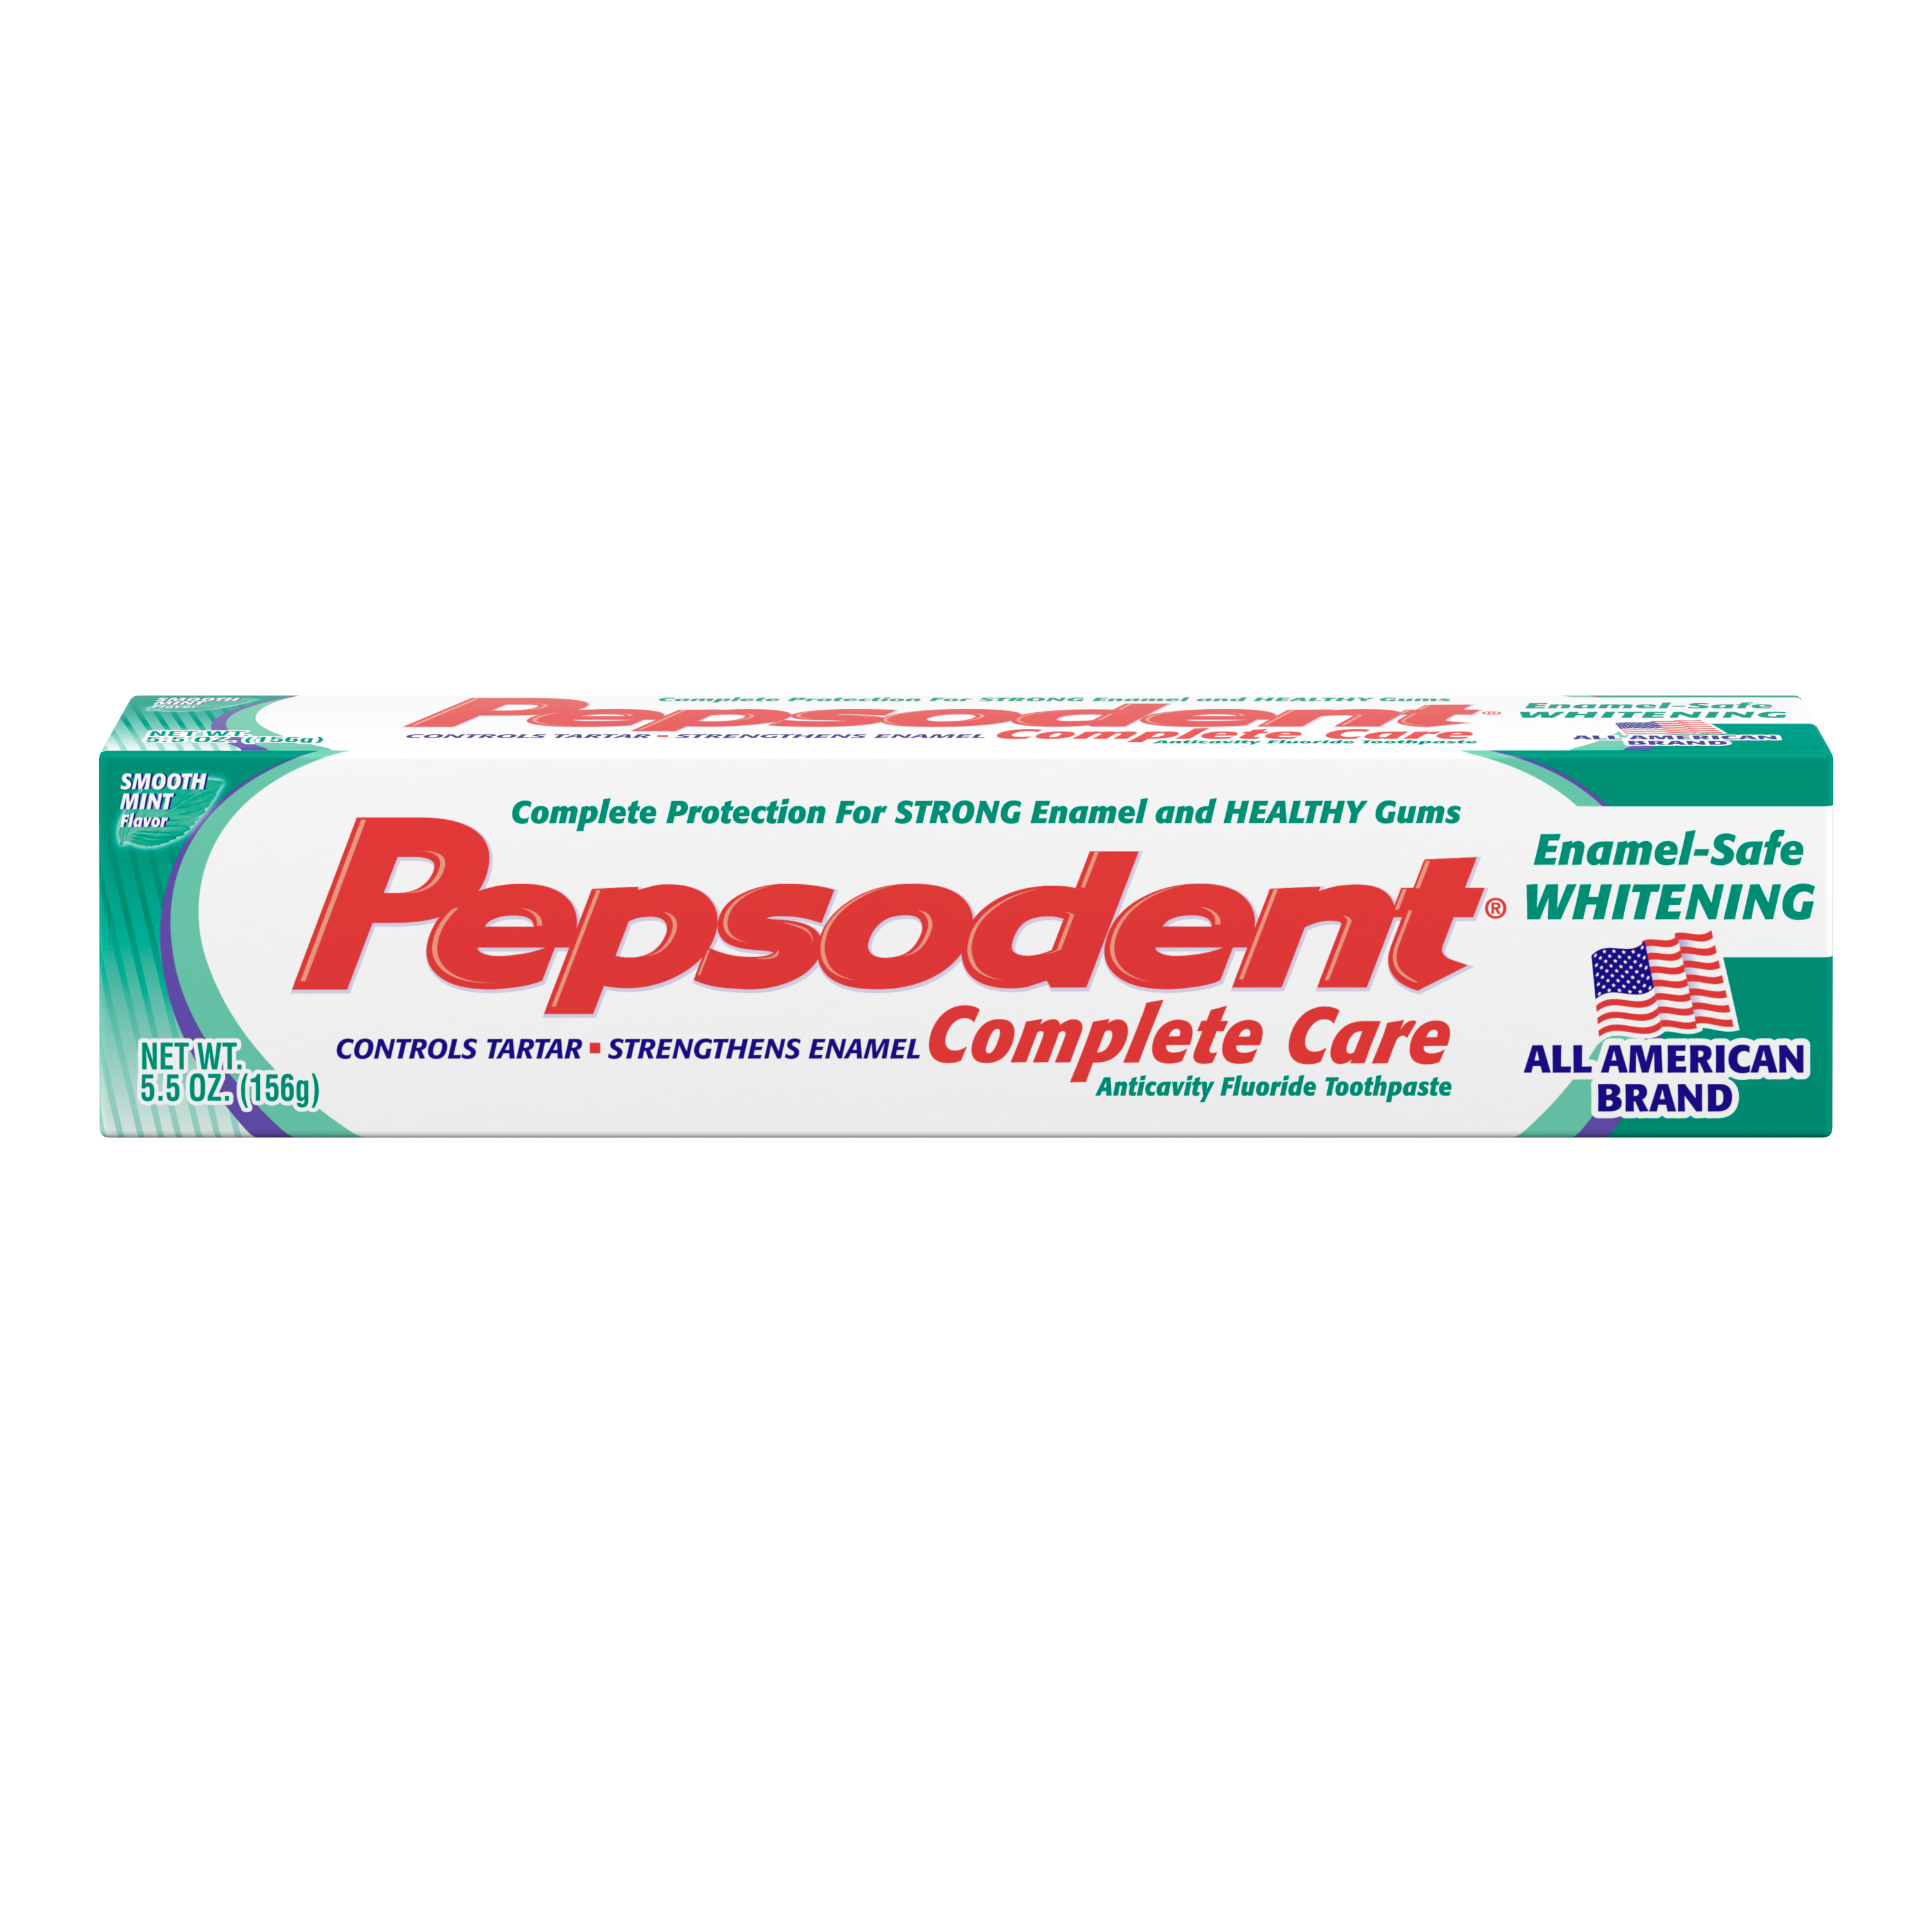 Pepsodent Complete Care Whitening